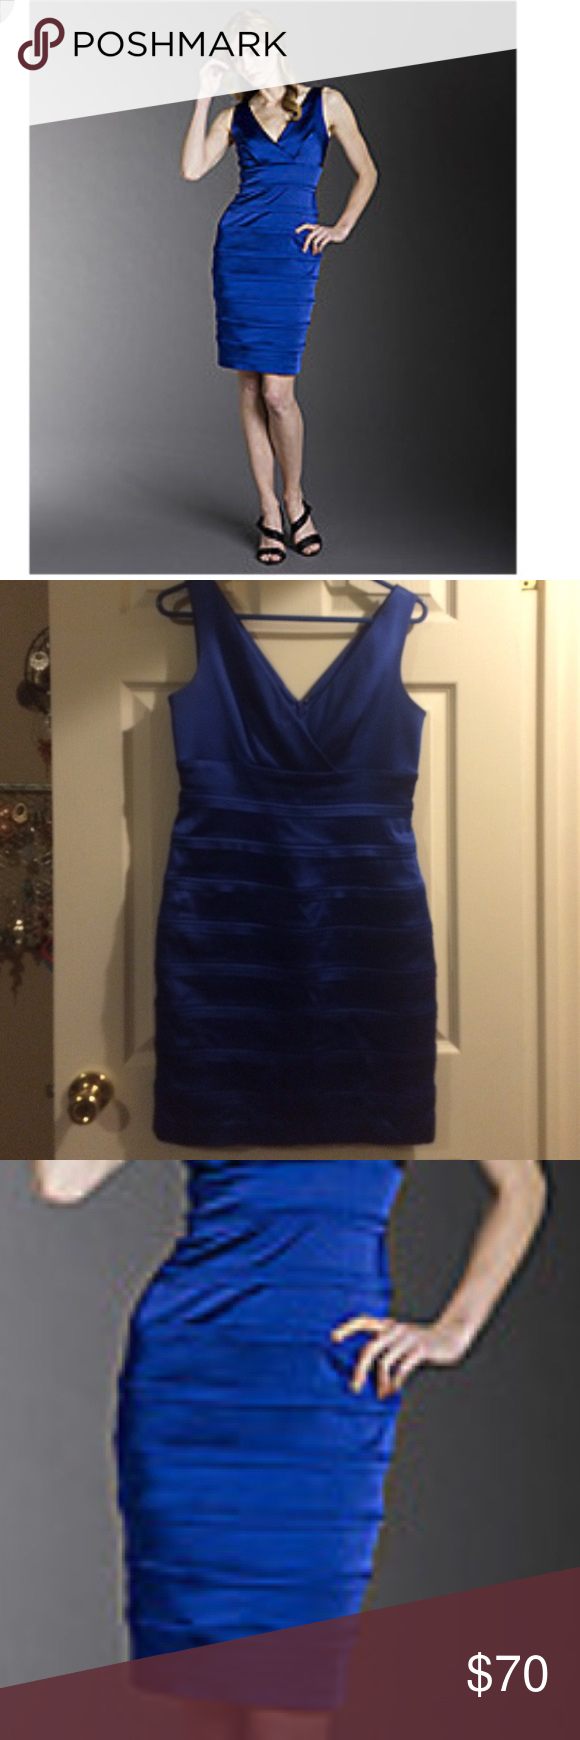 79c1a01b1405 Calvin Klein V neck banded satin royal blue dress Royal diamond blue banded  cocktail dress with zip back. This is a gorgeous piece.